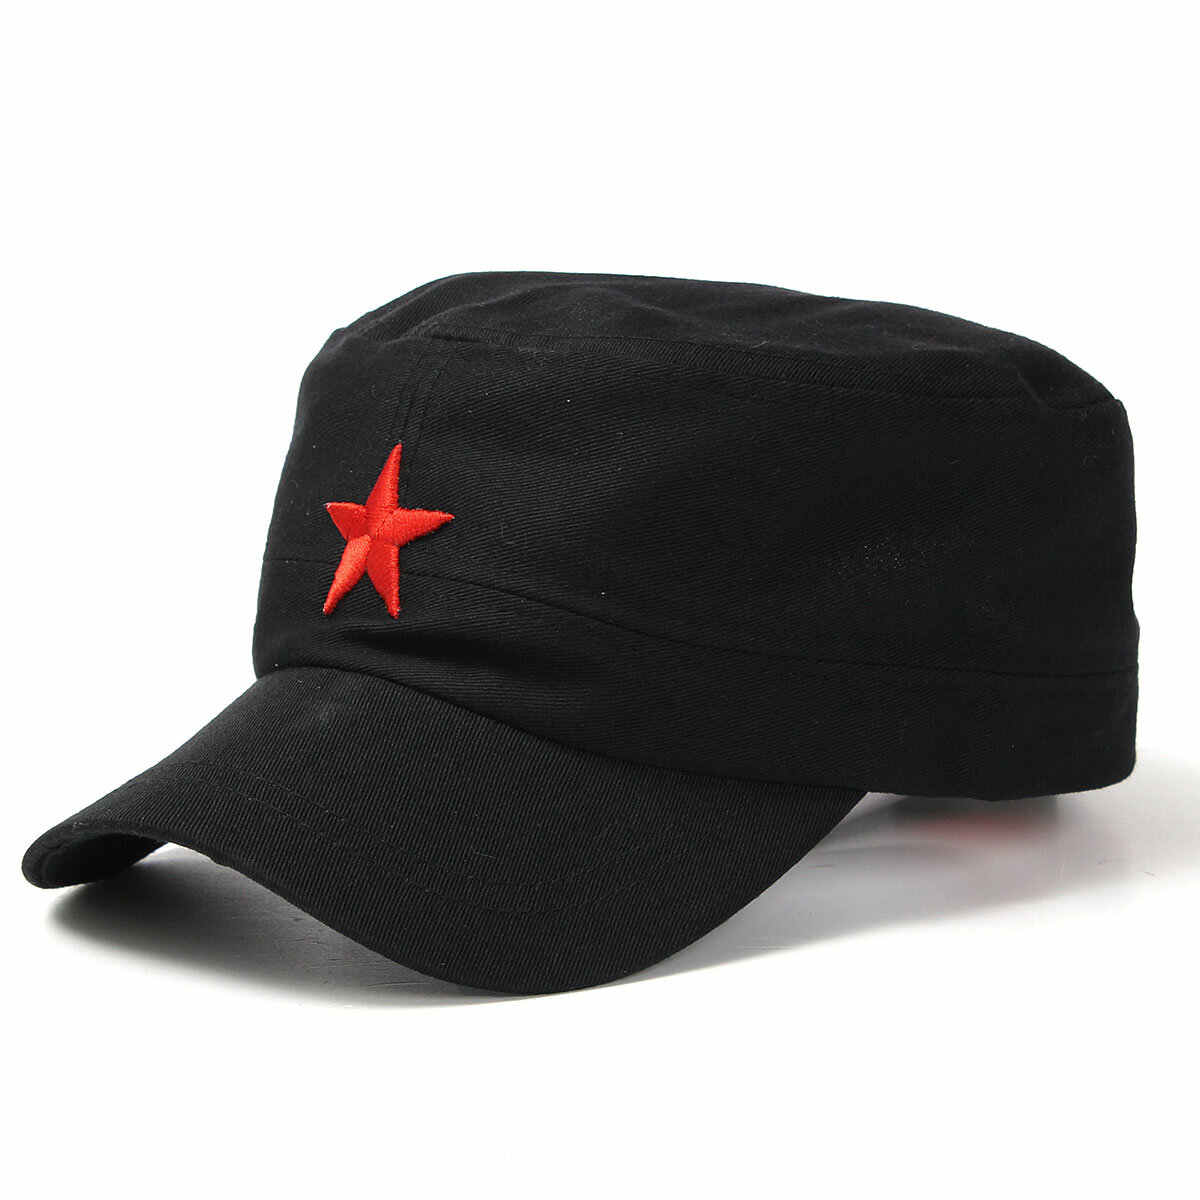 c7592b8ad56 Unisex Red Star Cotton Army Cadet Military Cap Adjustable Durable Flat Top  Hats COD